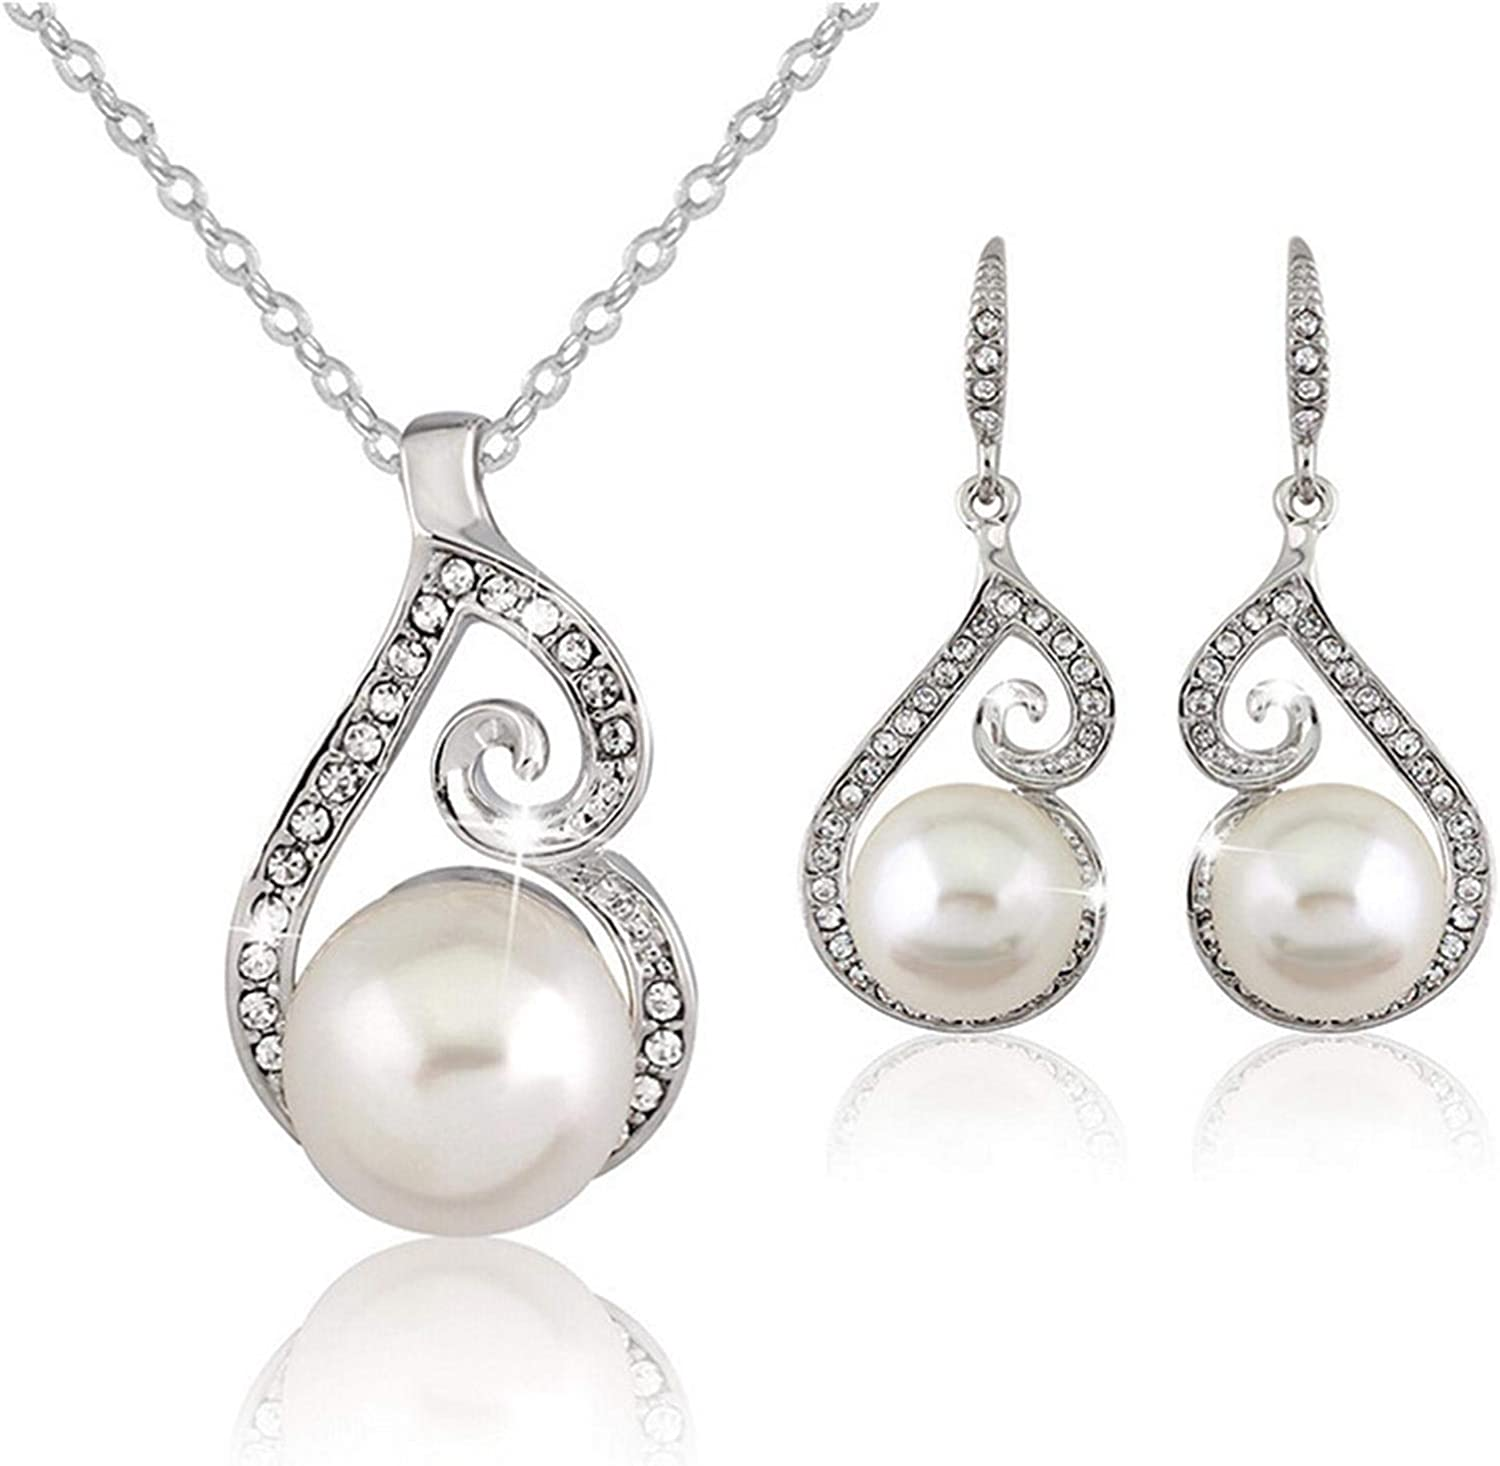 Womens Pearl Necklace Earrings Jewelry Set Shiny Crystal Pearls Necklace Dangle Earrings Jewelry Formal Dress Accessory for Bridesmaids & Brides Anniversary Wedding Party Jewelry Gifts